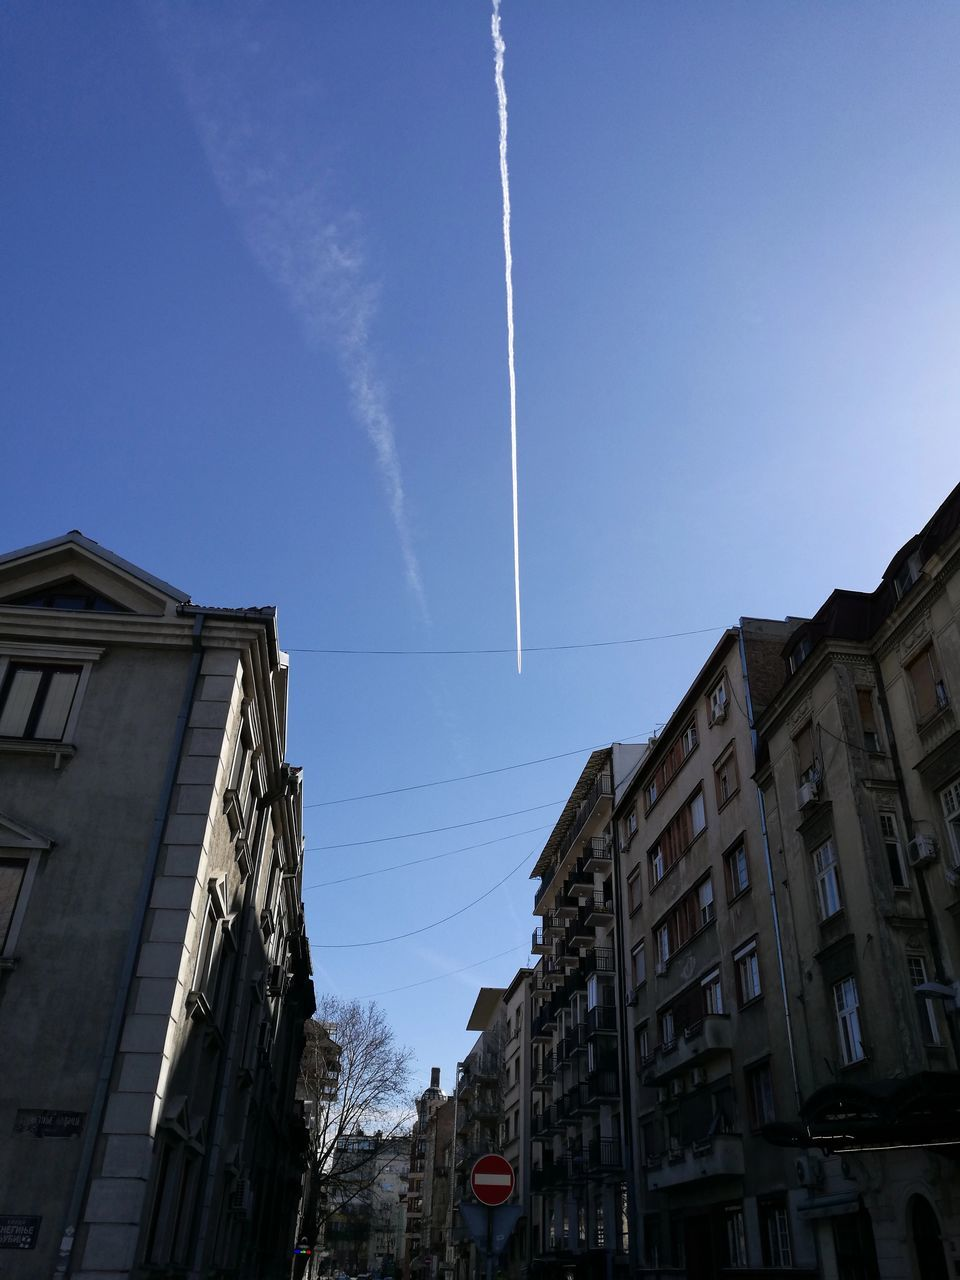 vapor trail, contrail, blue, built structure, low angle view, building exterior, no people, outdoors, architecture, clear sky, day, sky